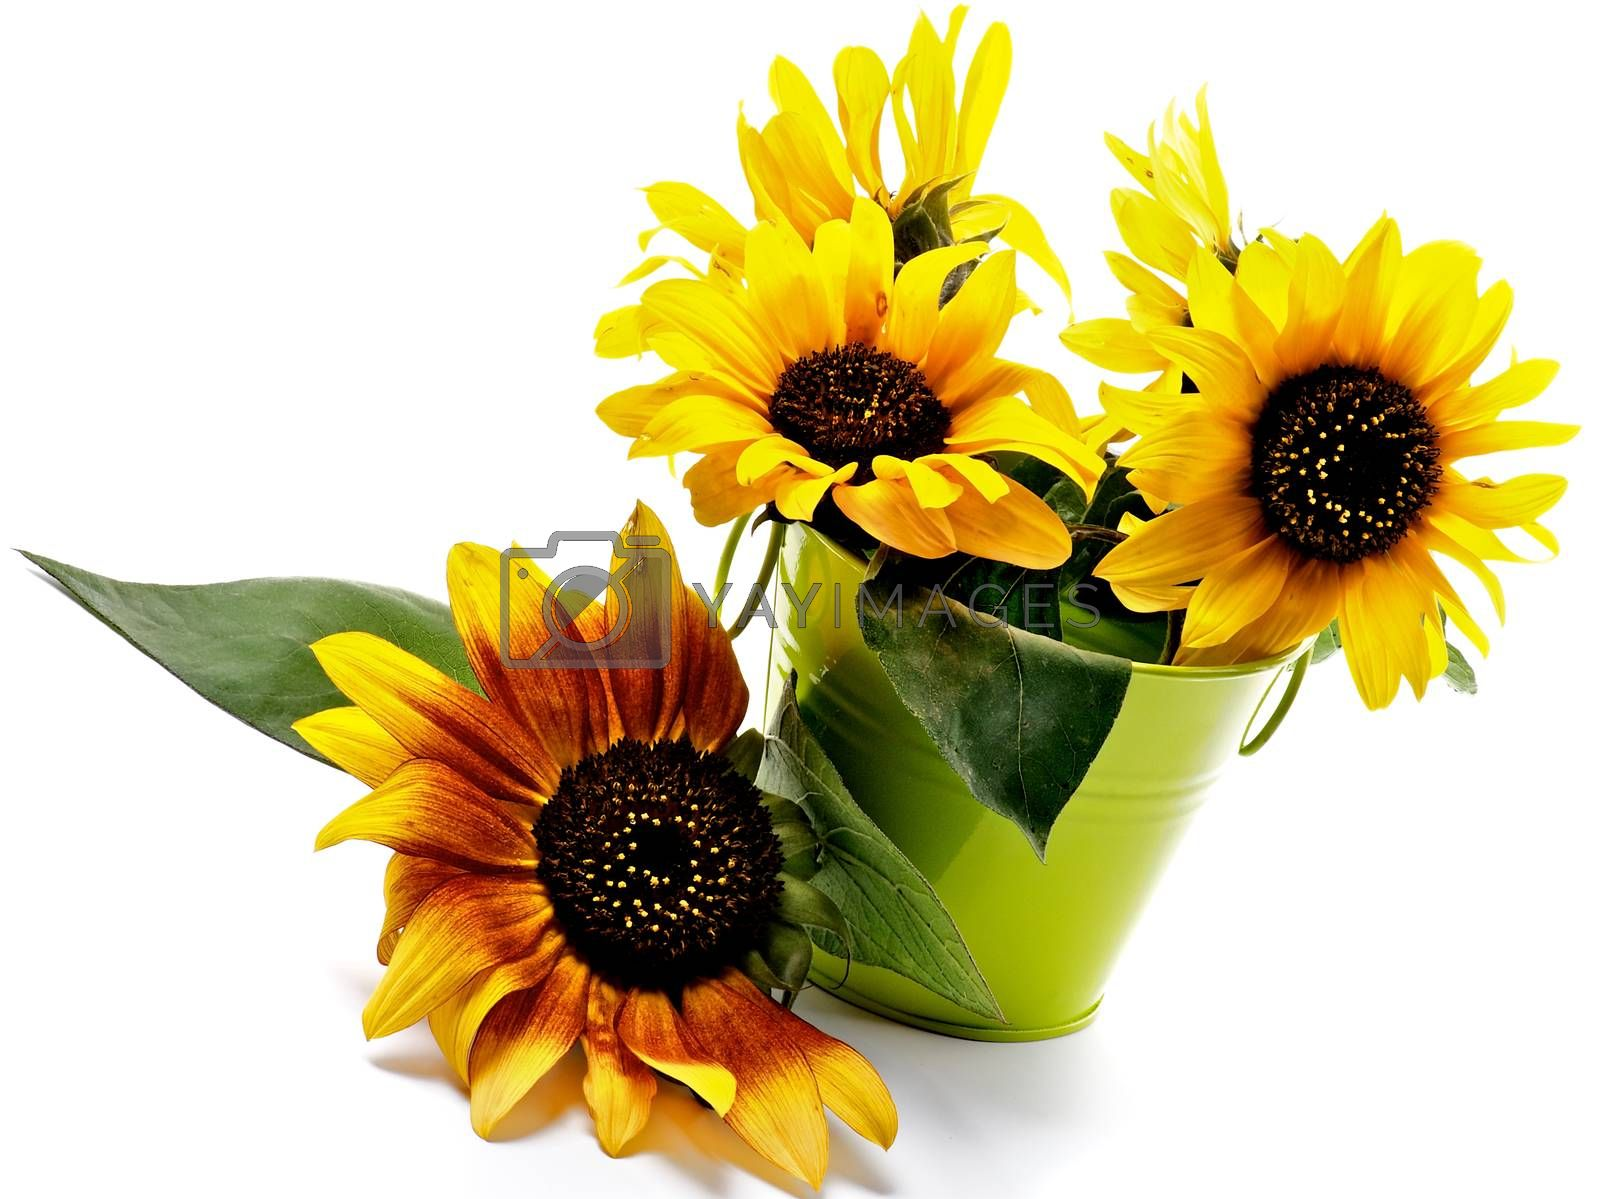 Arrangement of Beautiful Sunflowers with Leafs in Green Bucket closeup on White background